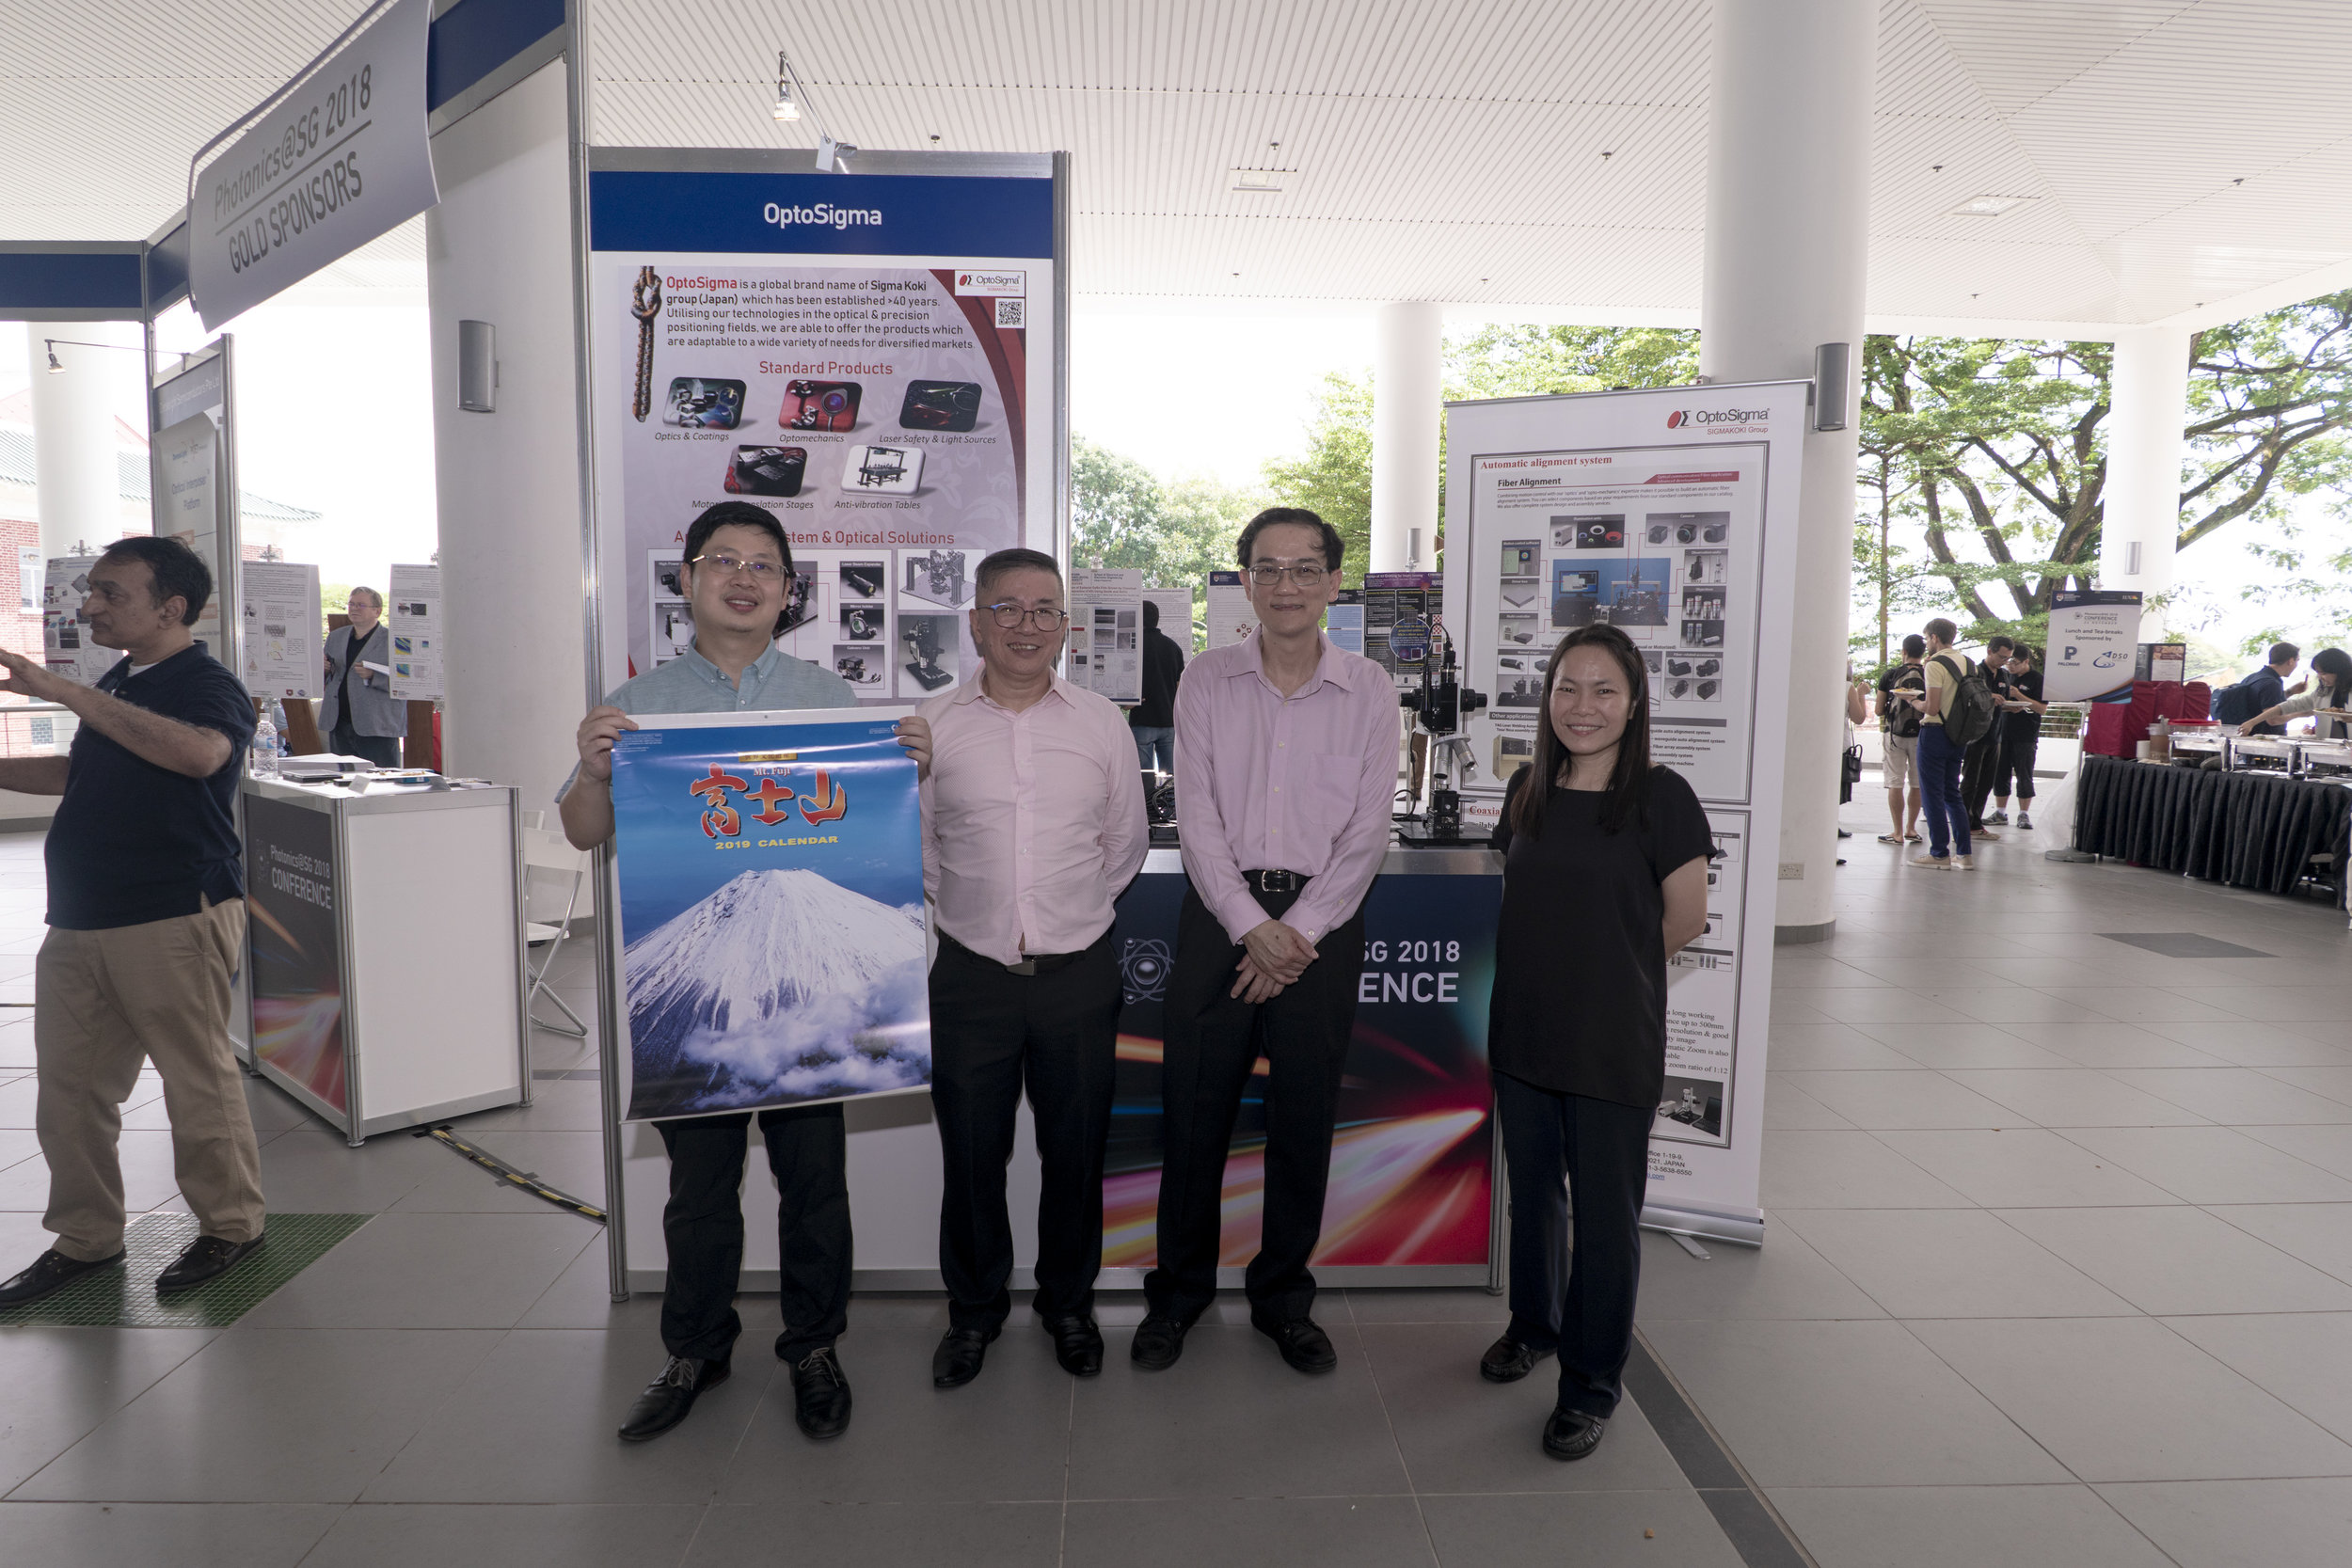 TPI Photonics SG 2018 Conference n Exhibition 0321rc.jpg